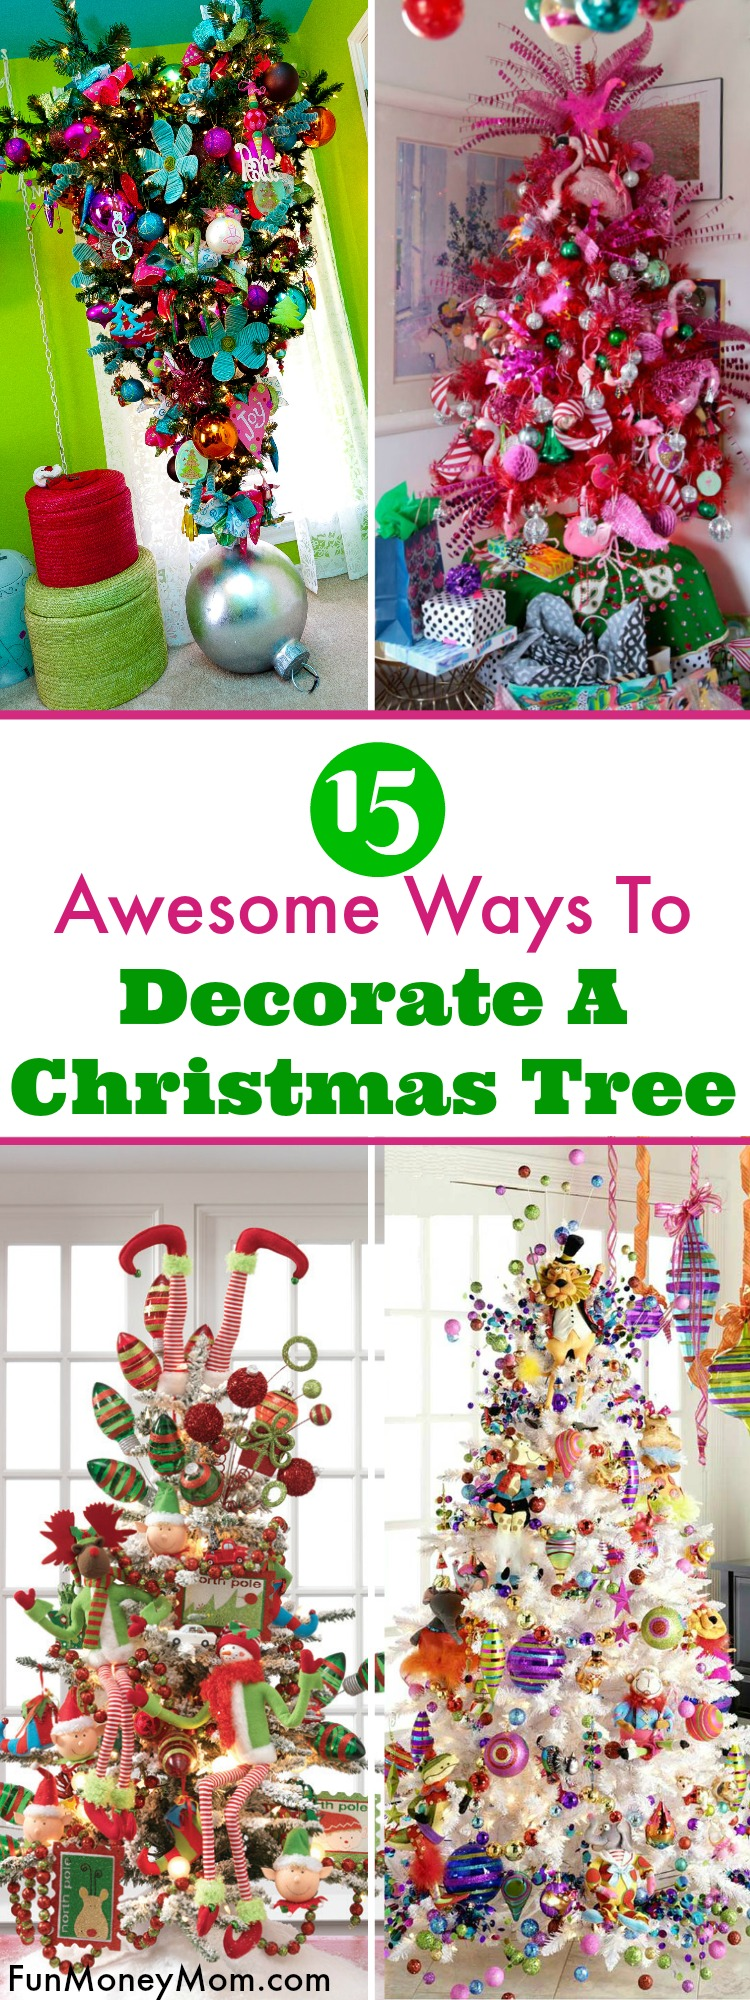 15 Awesome Ways To Decorate A Christmas Tree Fun Money Mom